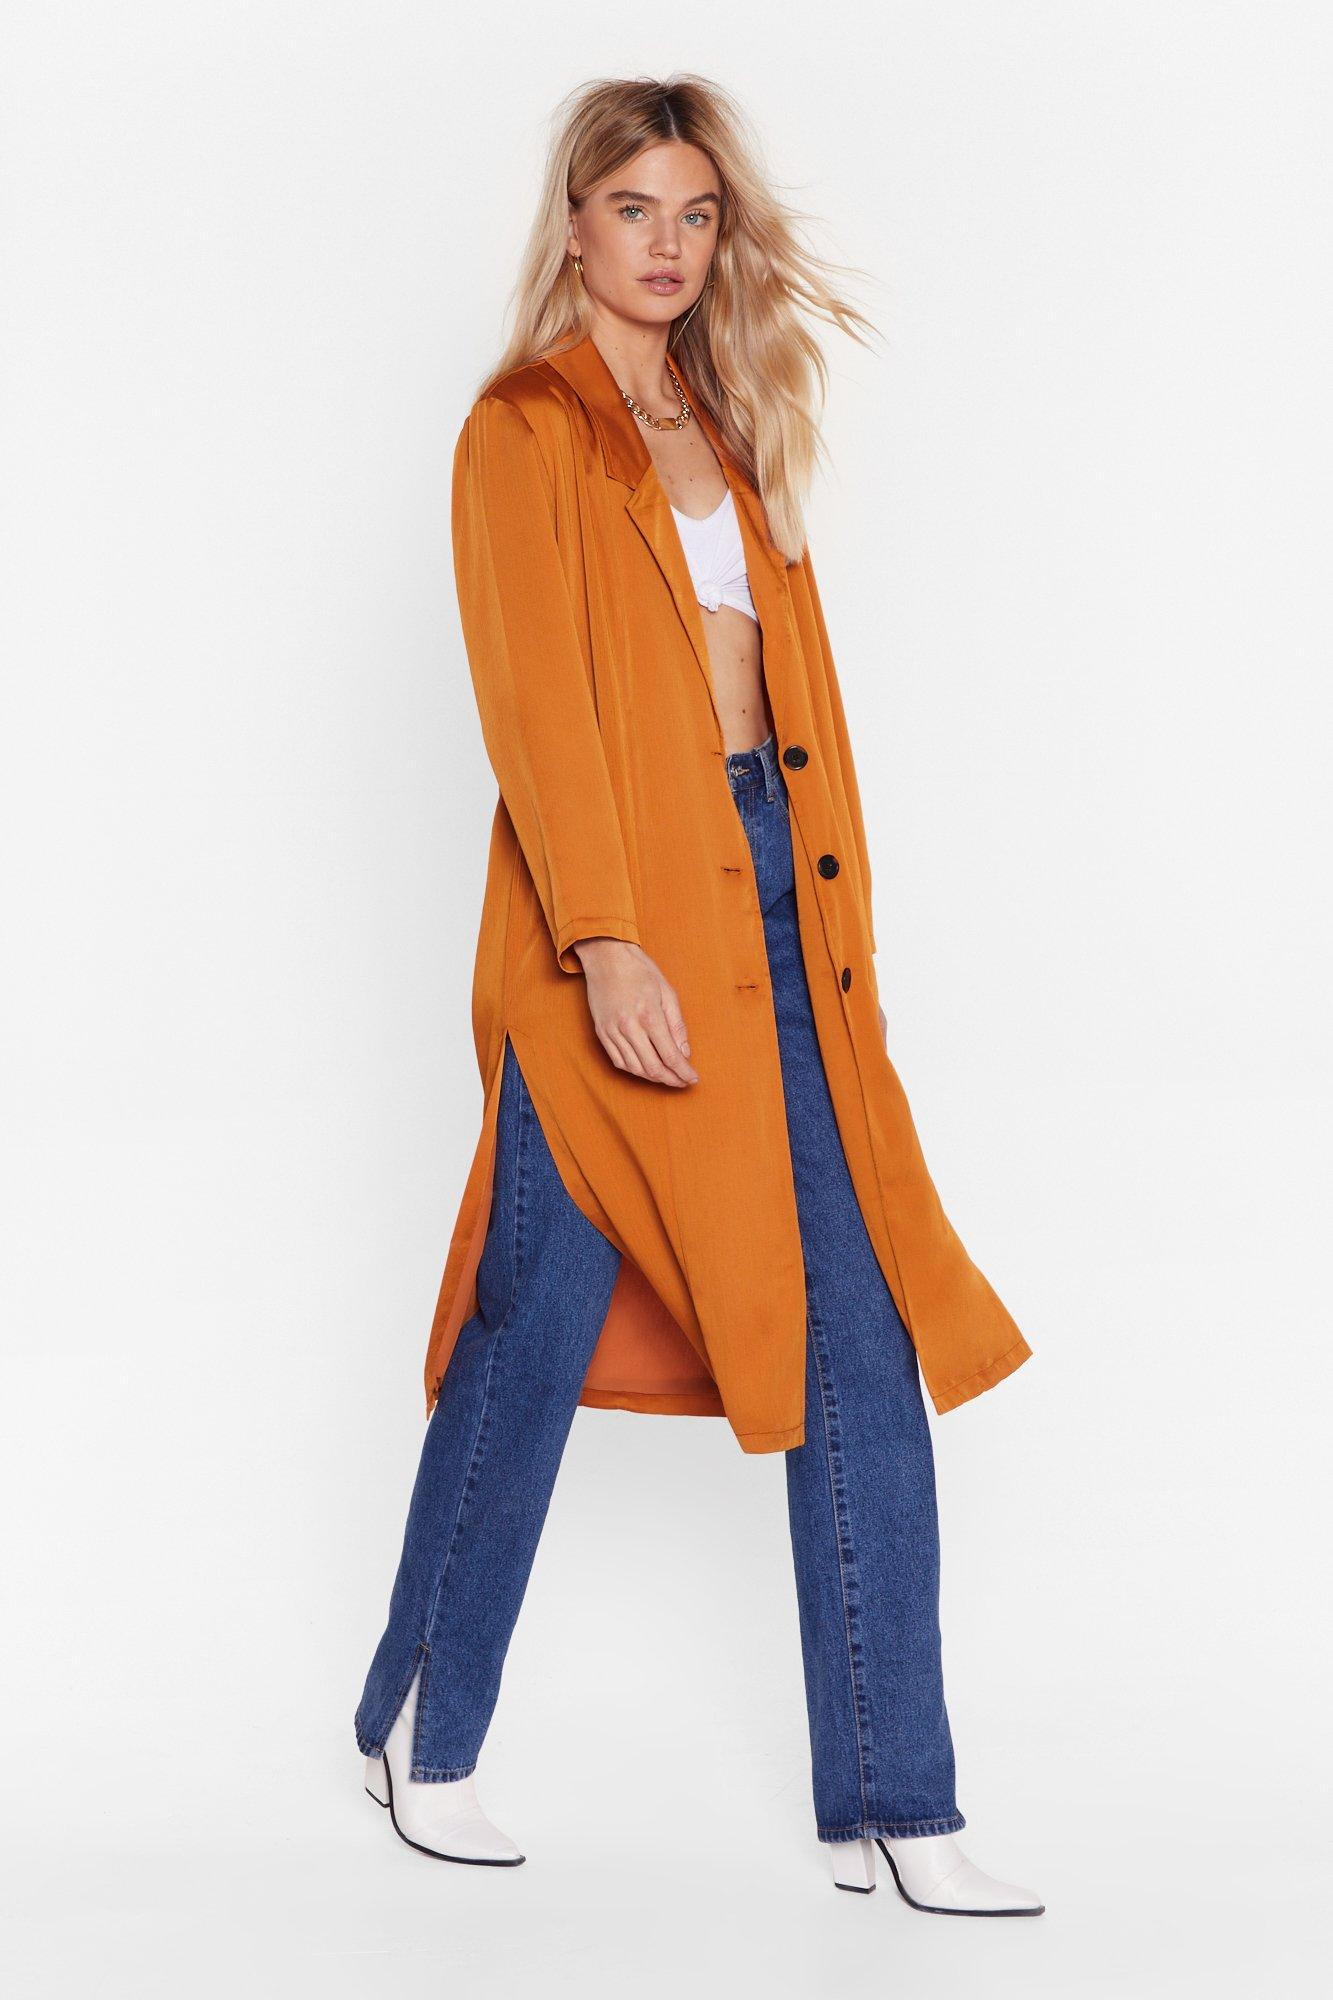 Image of Actions Sleek Louder Than Words Duster Jacket